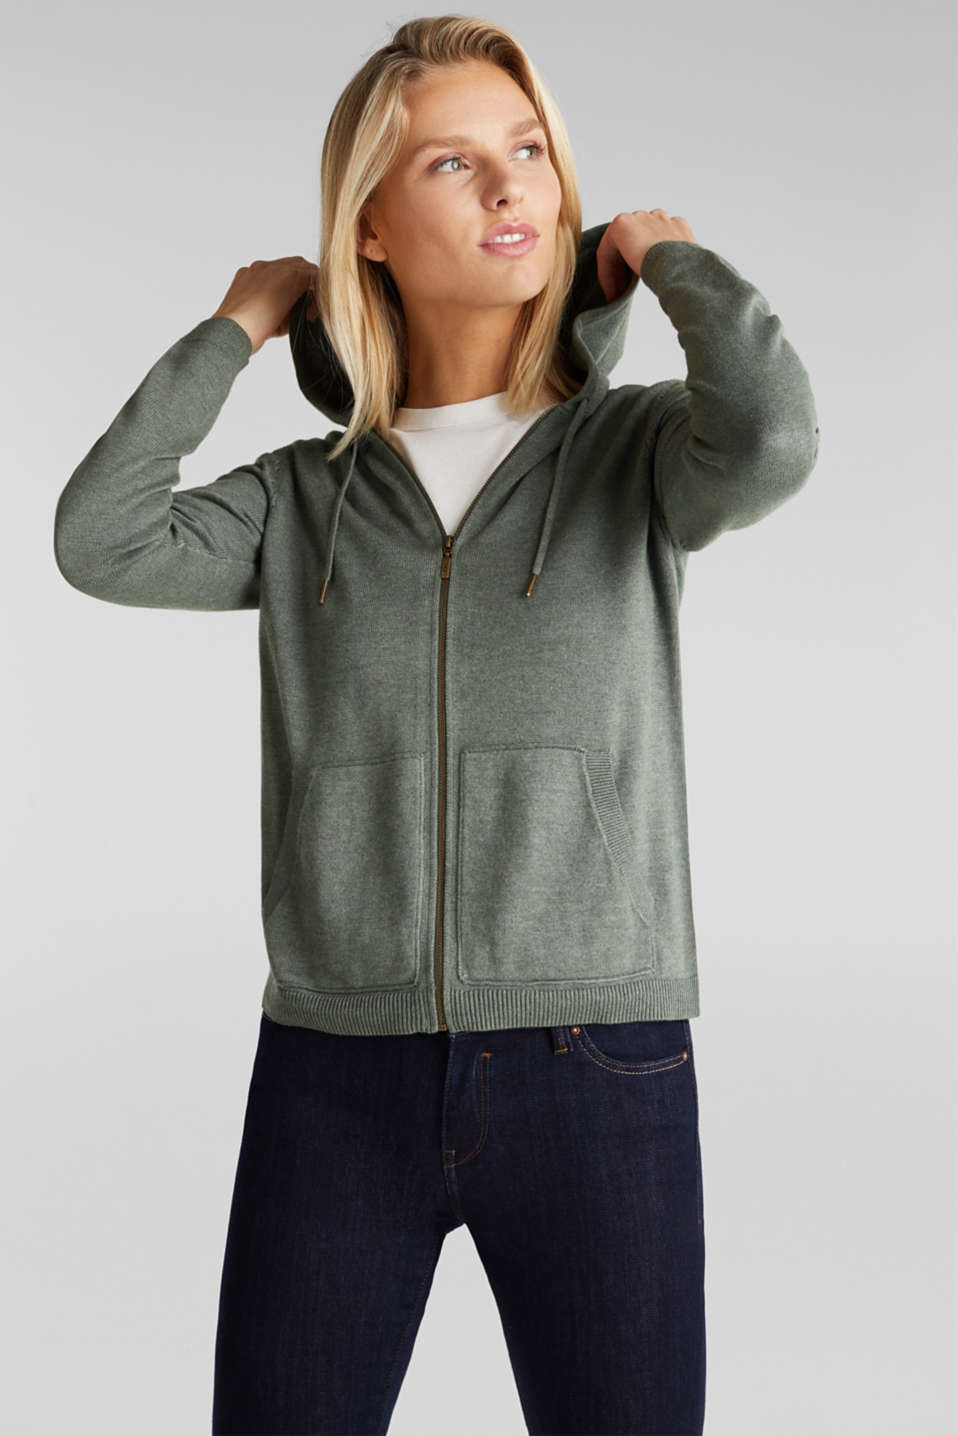 edc - Hooded cardigan, organic cotton